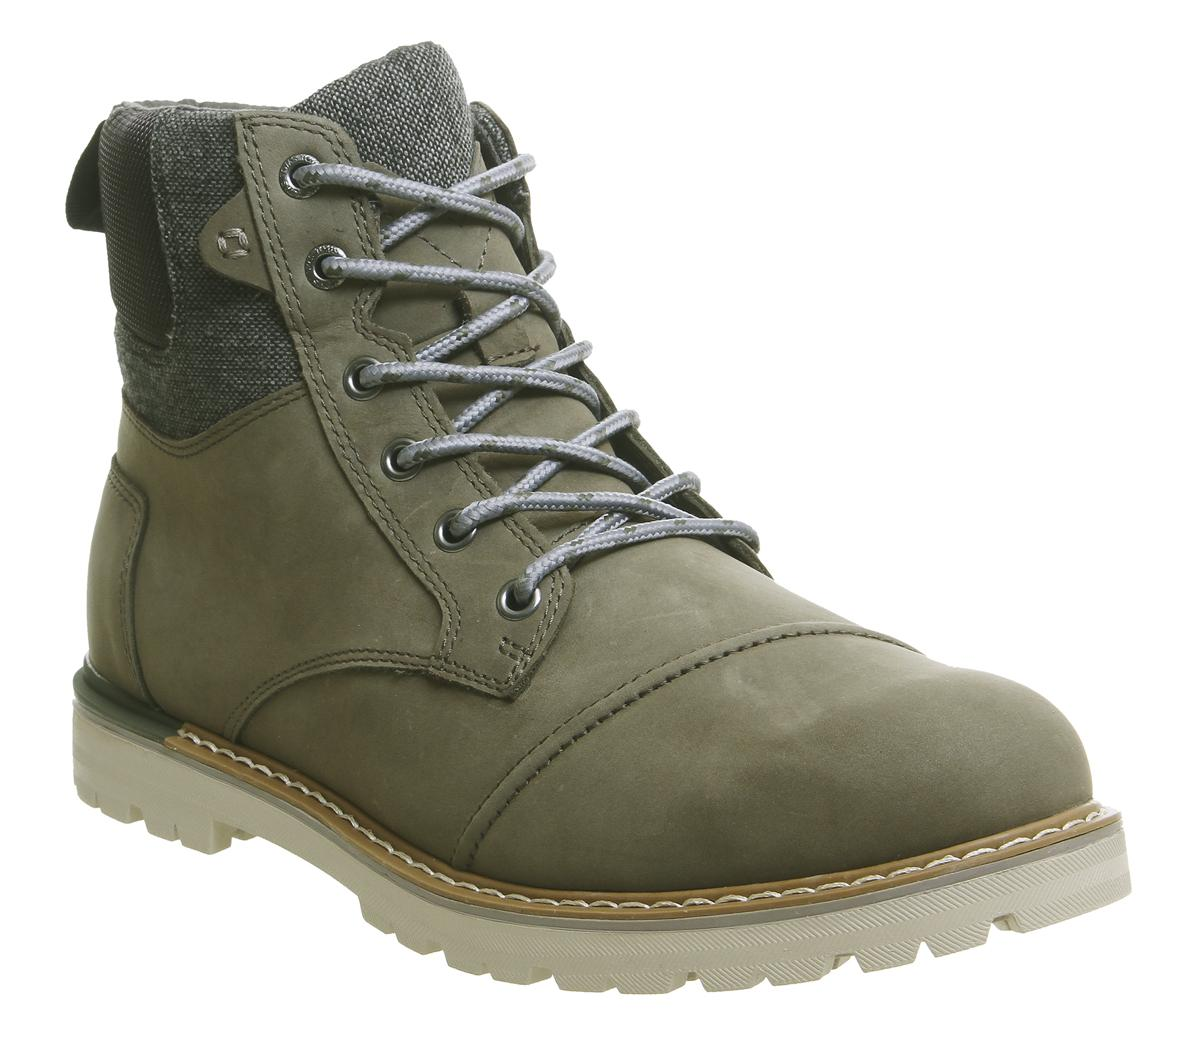 Toms Ashland Boots Tarmac Olive - Boots